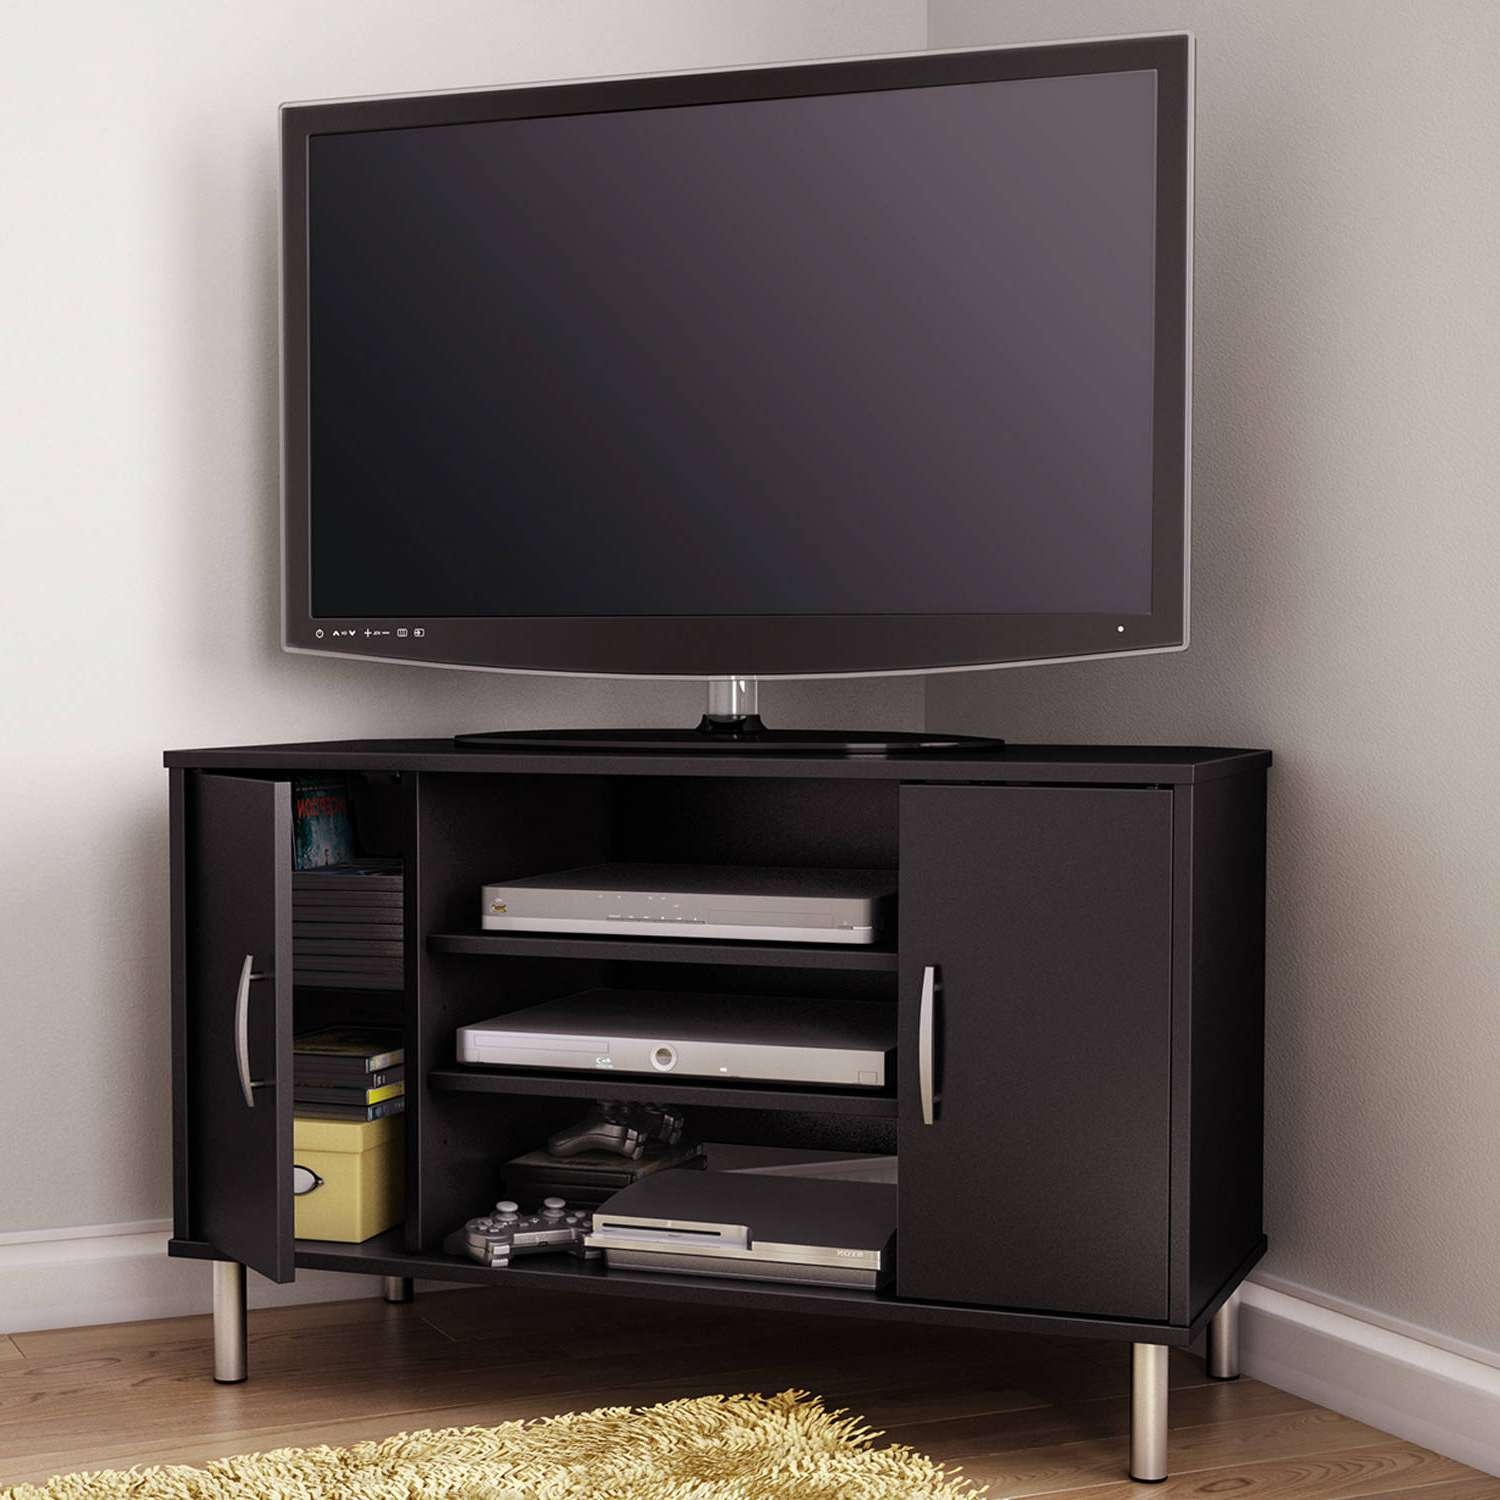 Tv Stand : Corner Tv Stand For Inch 24af711bf819 1 Stands Tvs At Within 55 Inch Corner Tv Stands (View 12 of 20)